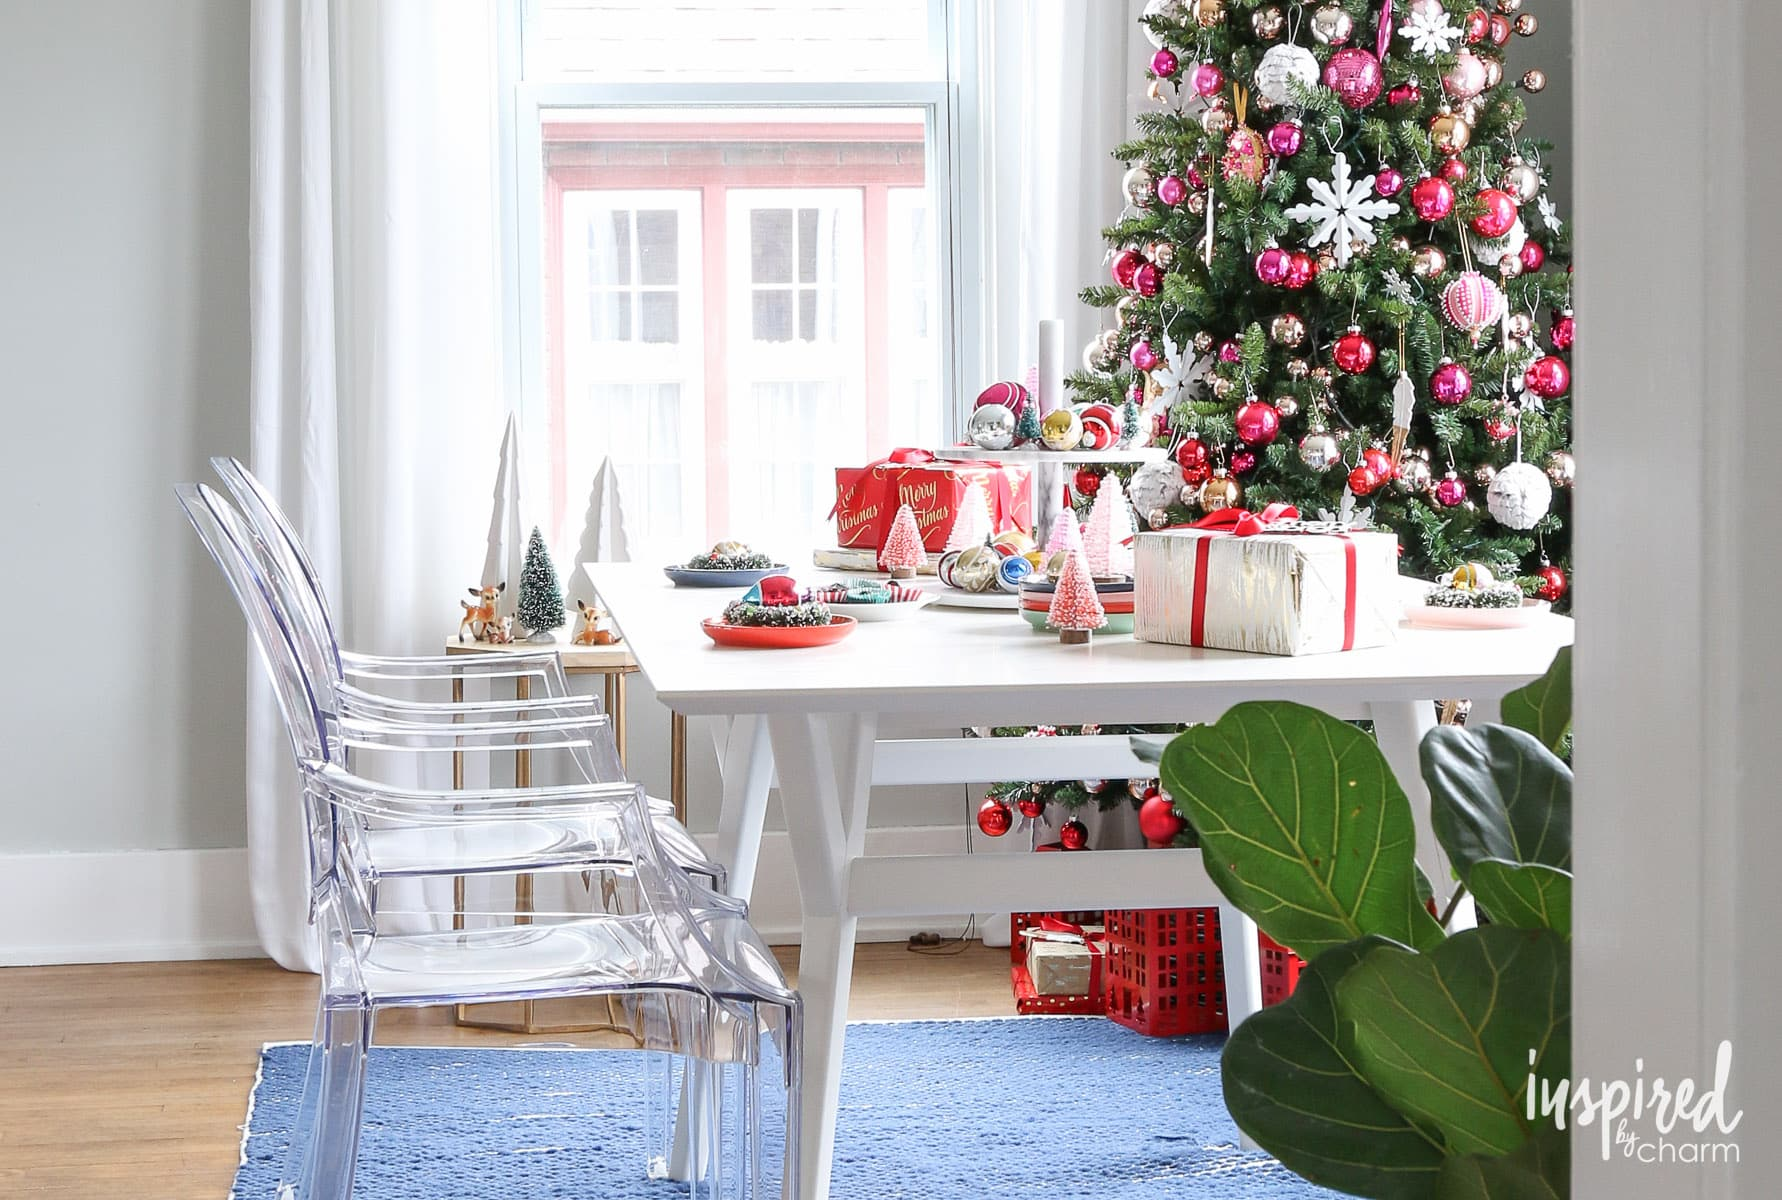 Home Tours Holiday Home Tour 2015  Inspiredcharm